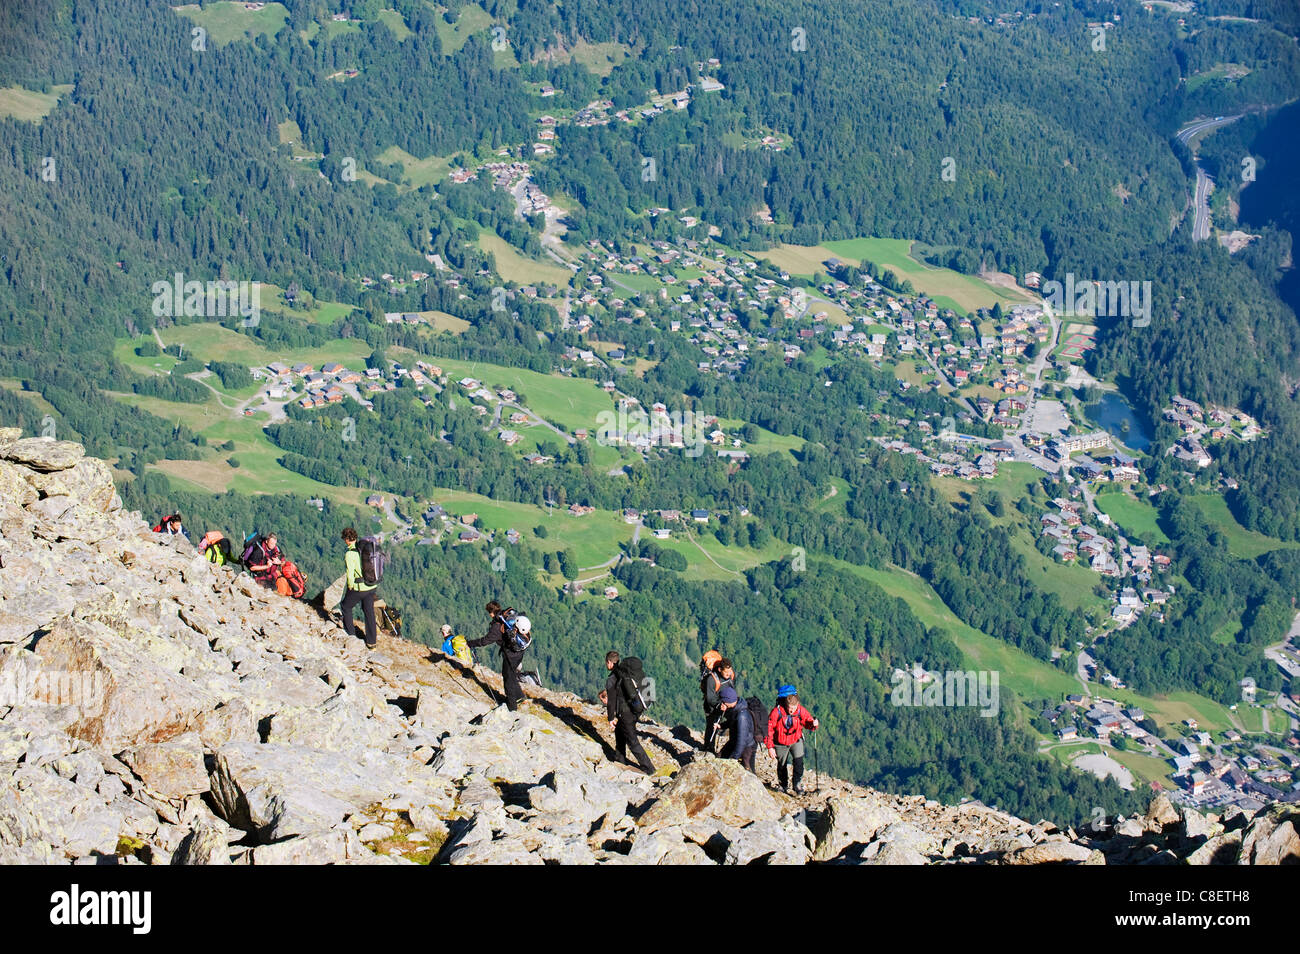 Hikers above Chamonix Valley, Mont Blanc Massif, French Alps, France - Stock Image